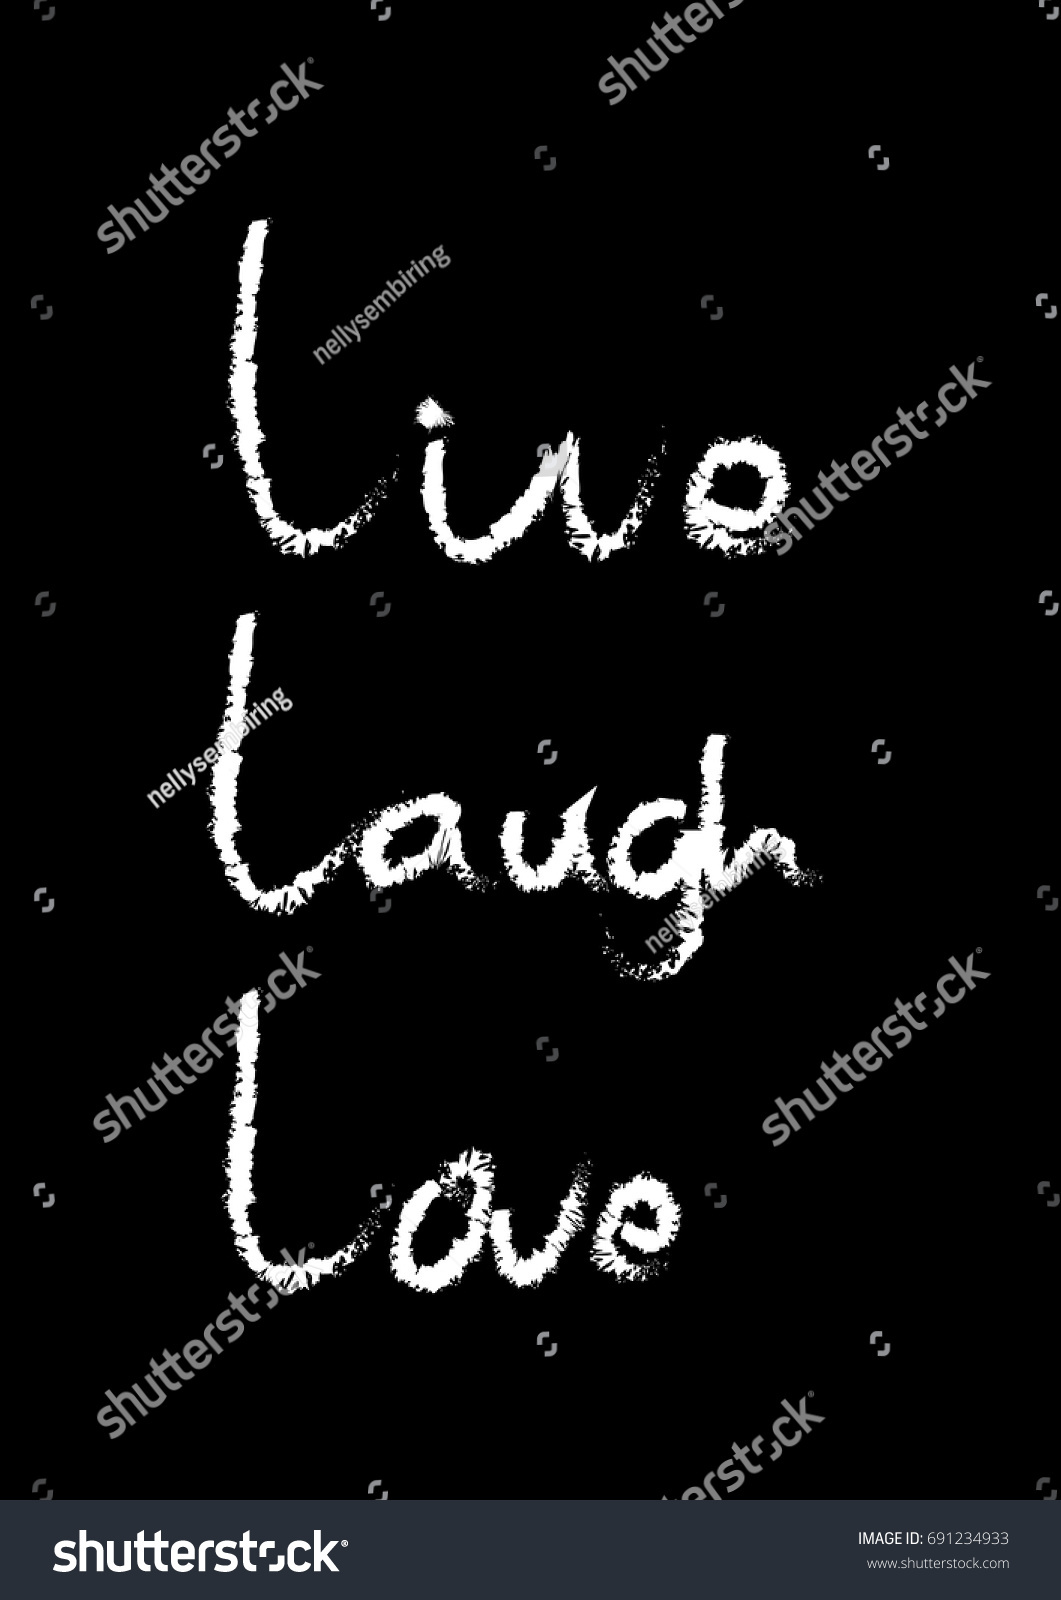 Smile Laugh Love Quotes Live Laugh Love Modern Calligraphy Inspirational Stock Vector